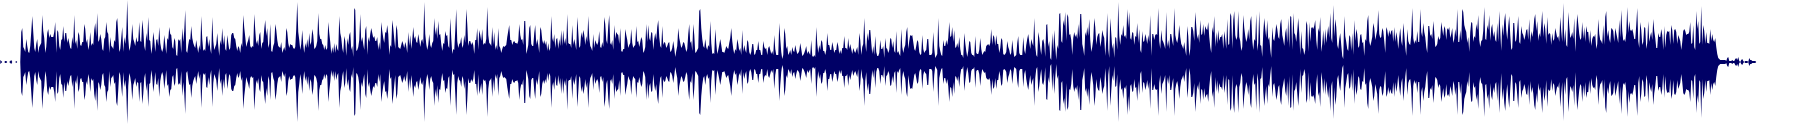 waveform of track #83032